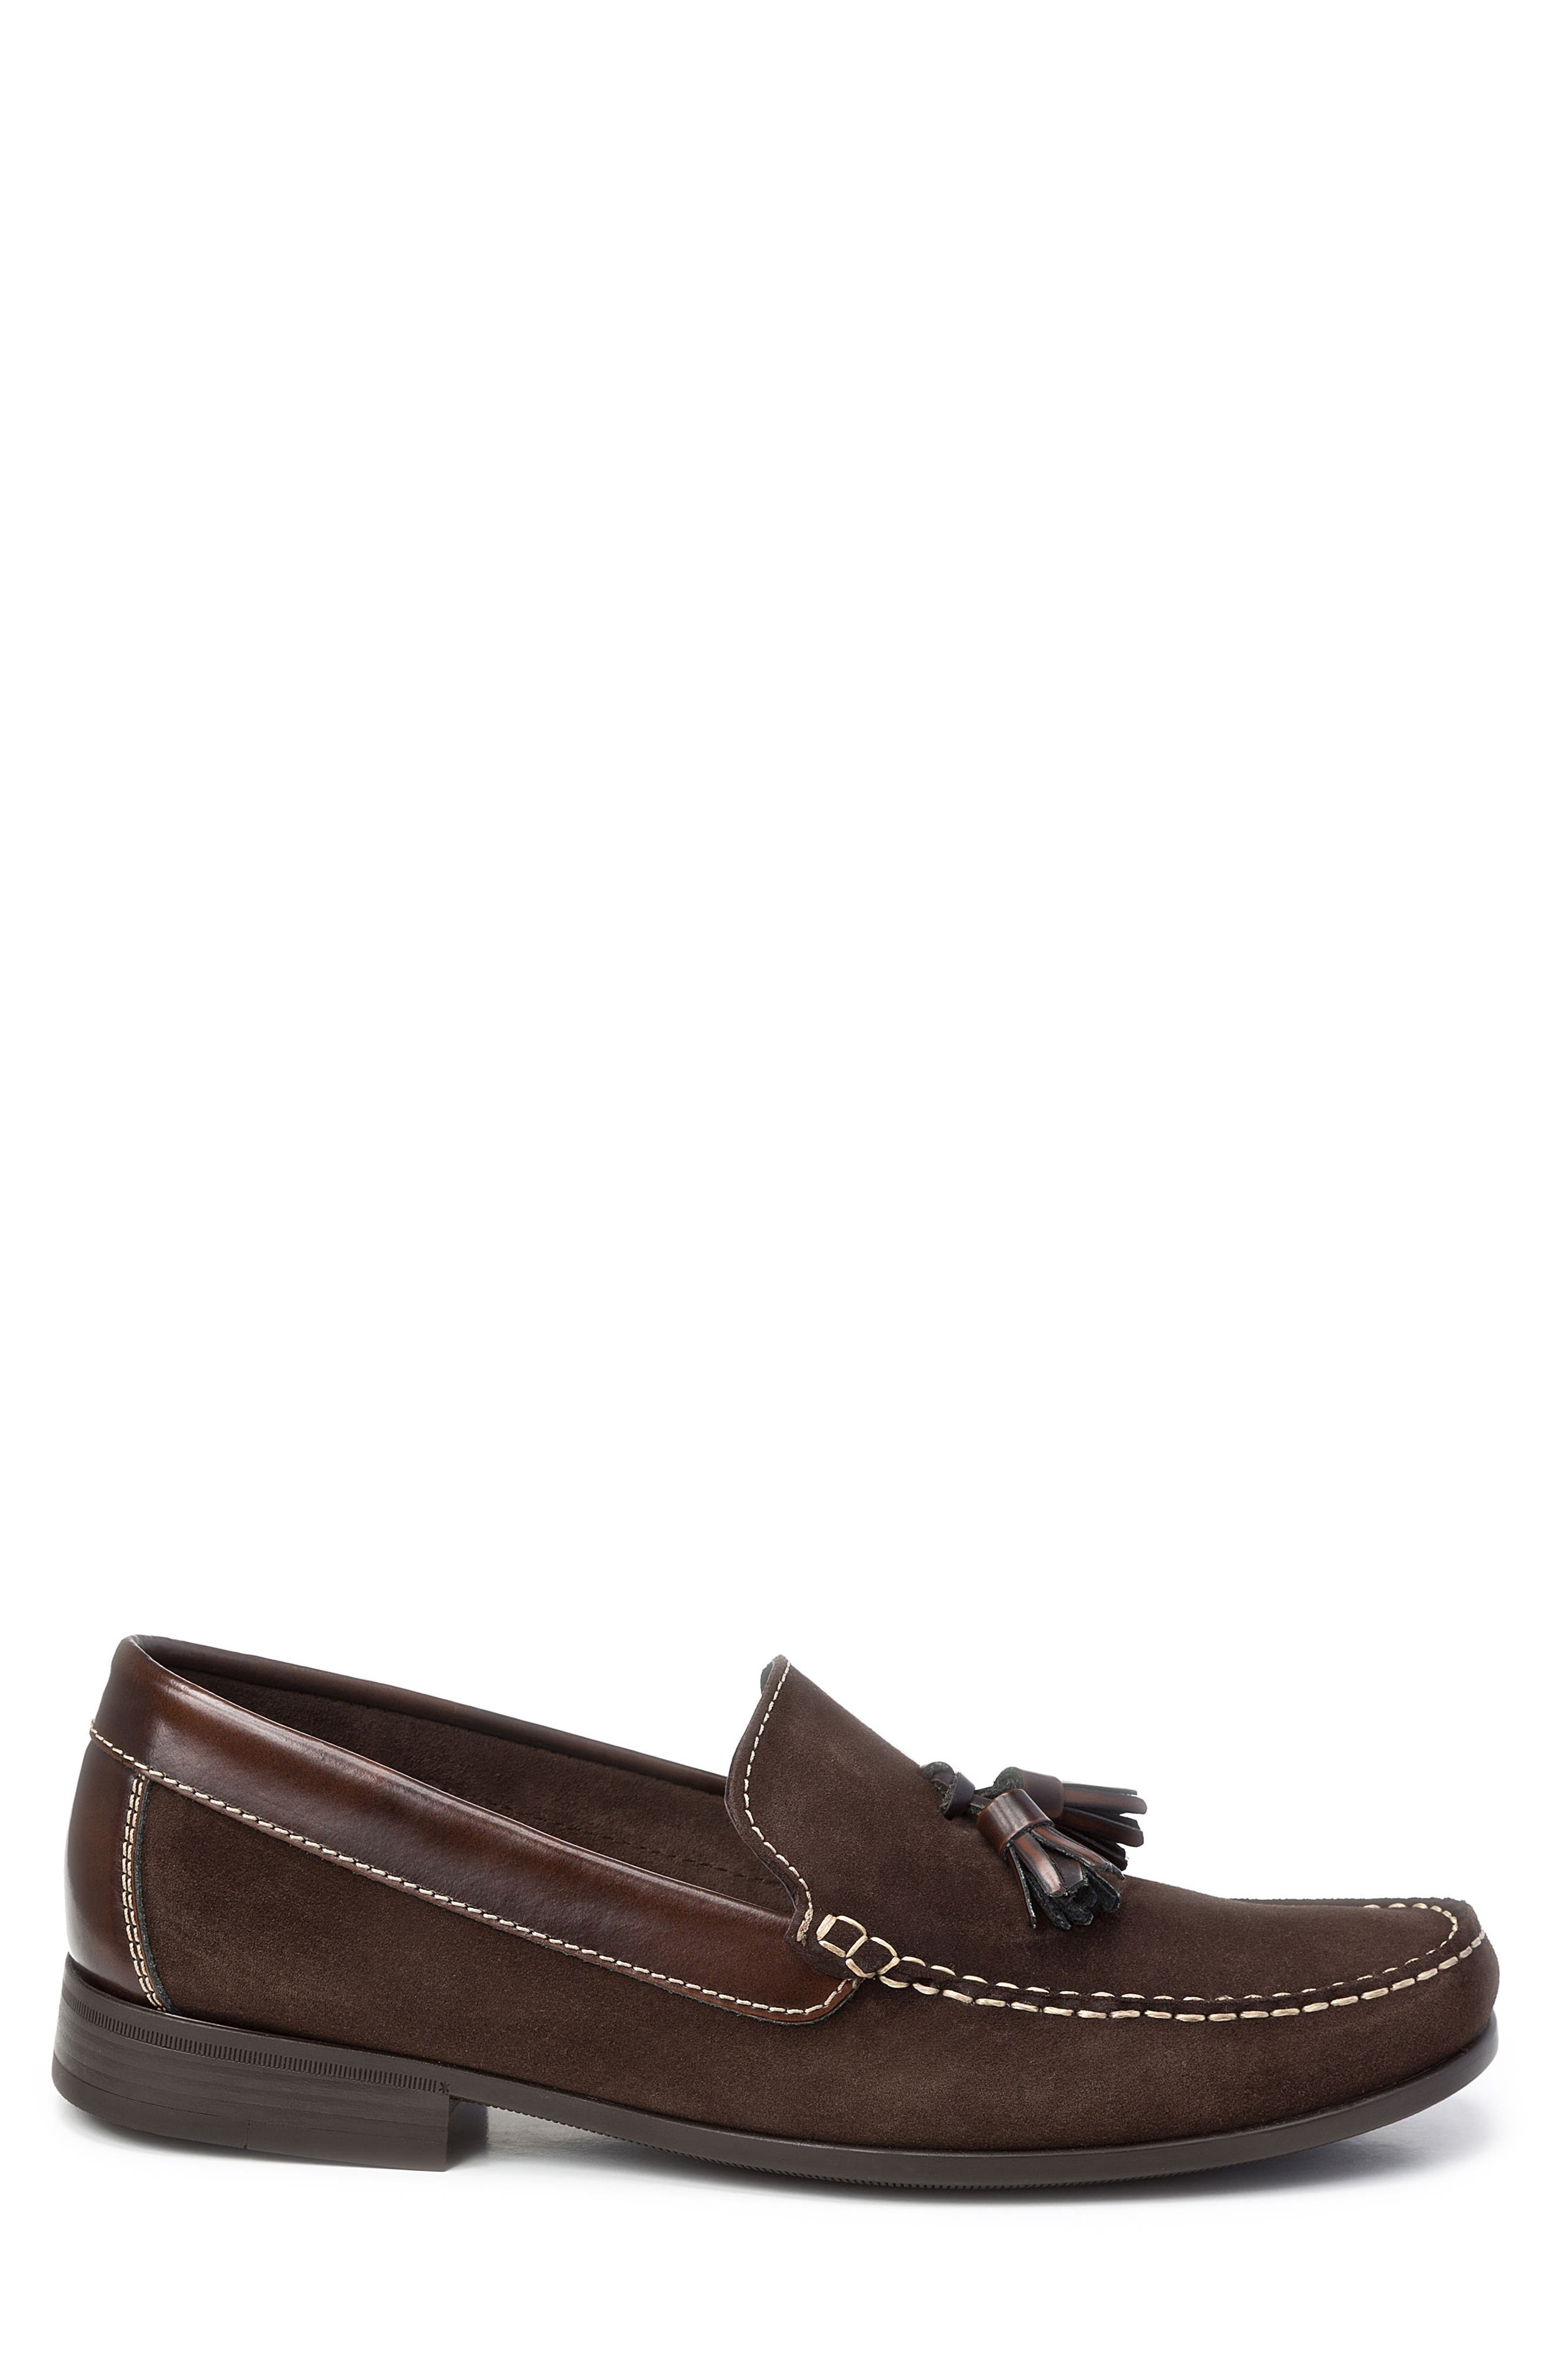 SANDRO MOSCOLONI,                             Hojas Tassel Loafer,                             Alternate thumbnail 3, color,                             BROWN LEATHER